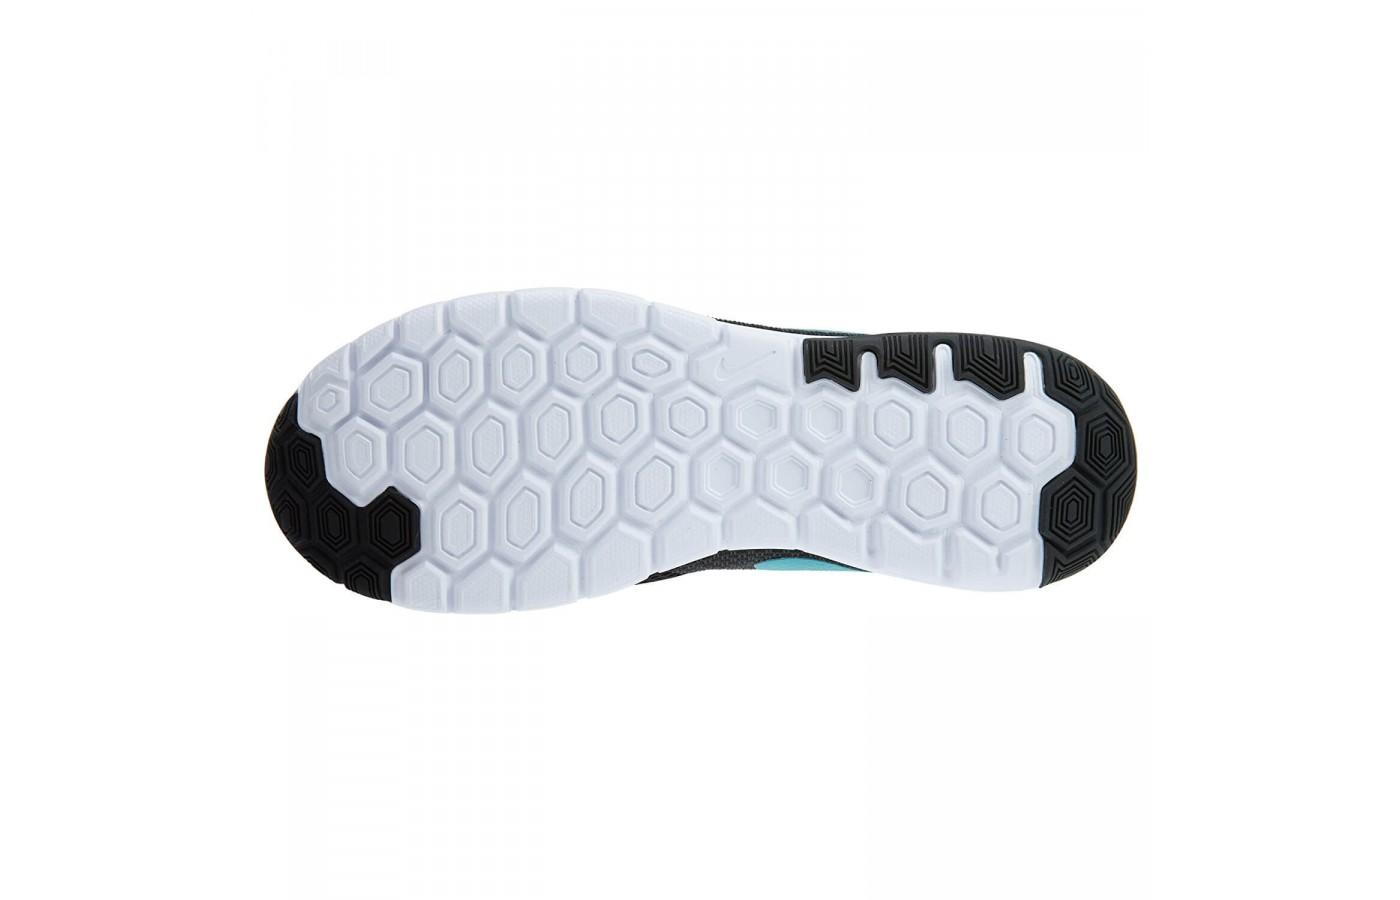 c69533bb019db ... The outsole of the Nike Flex Experience RN 6 is durable and the  hexagonal lugs provide ...